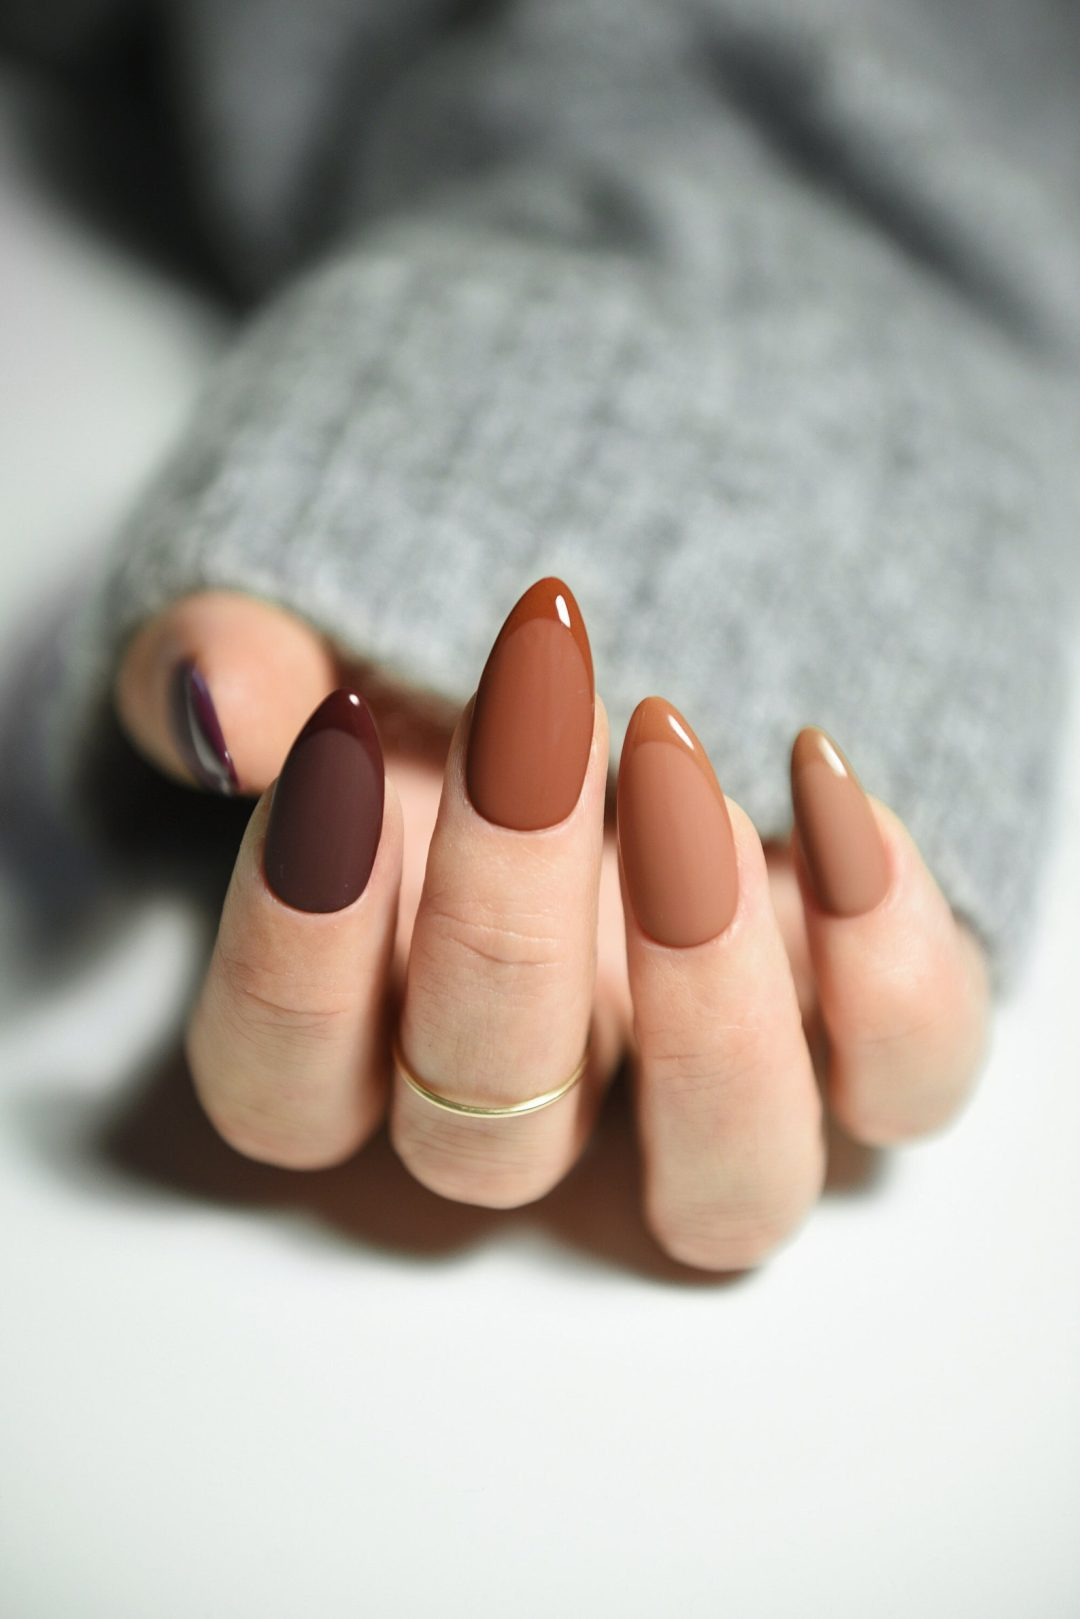 40+ Insanely Cute Thanksgiving Nails That You Need To Try This Year